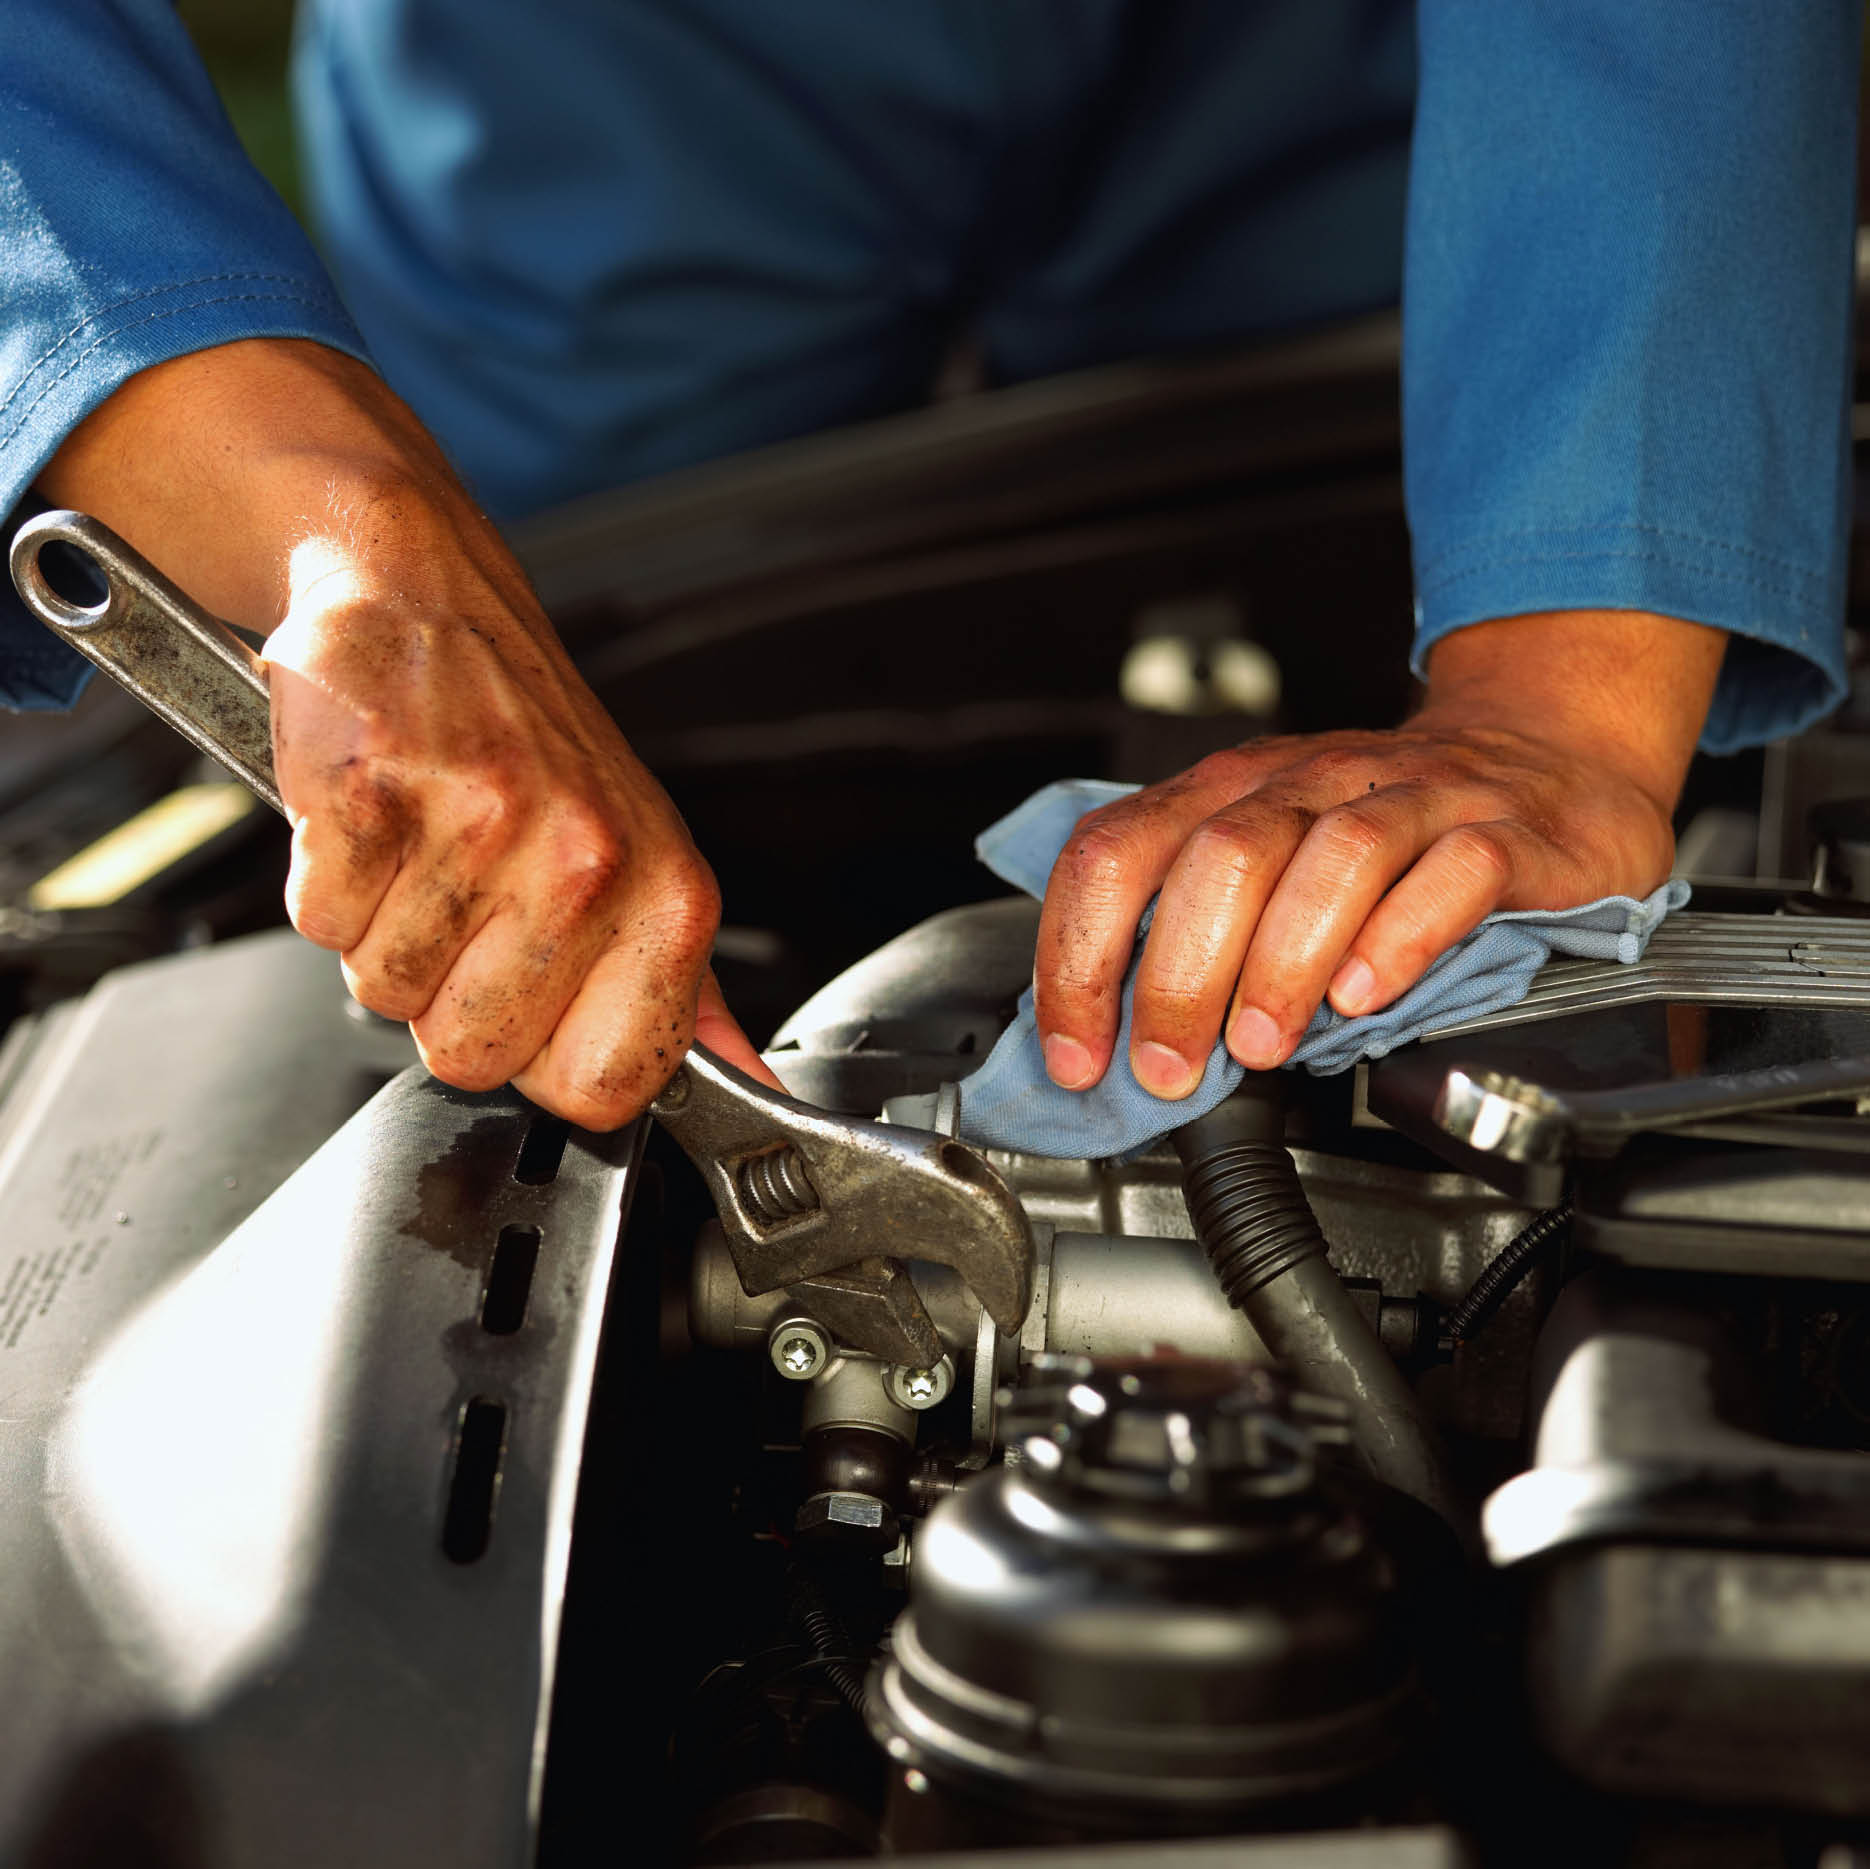 From basic repairs to complete engine service. Carsmart can handle all your automotive repair needs or maintenance services. 3 locations in Logan, Smithfield and now in Hyrum, Utah